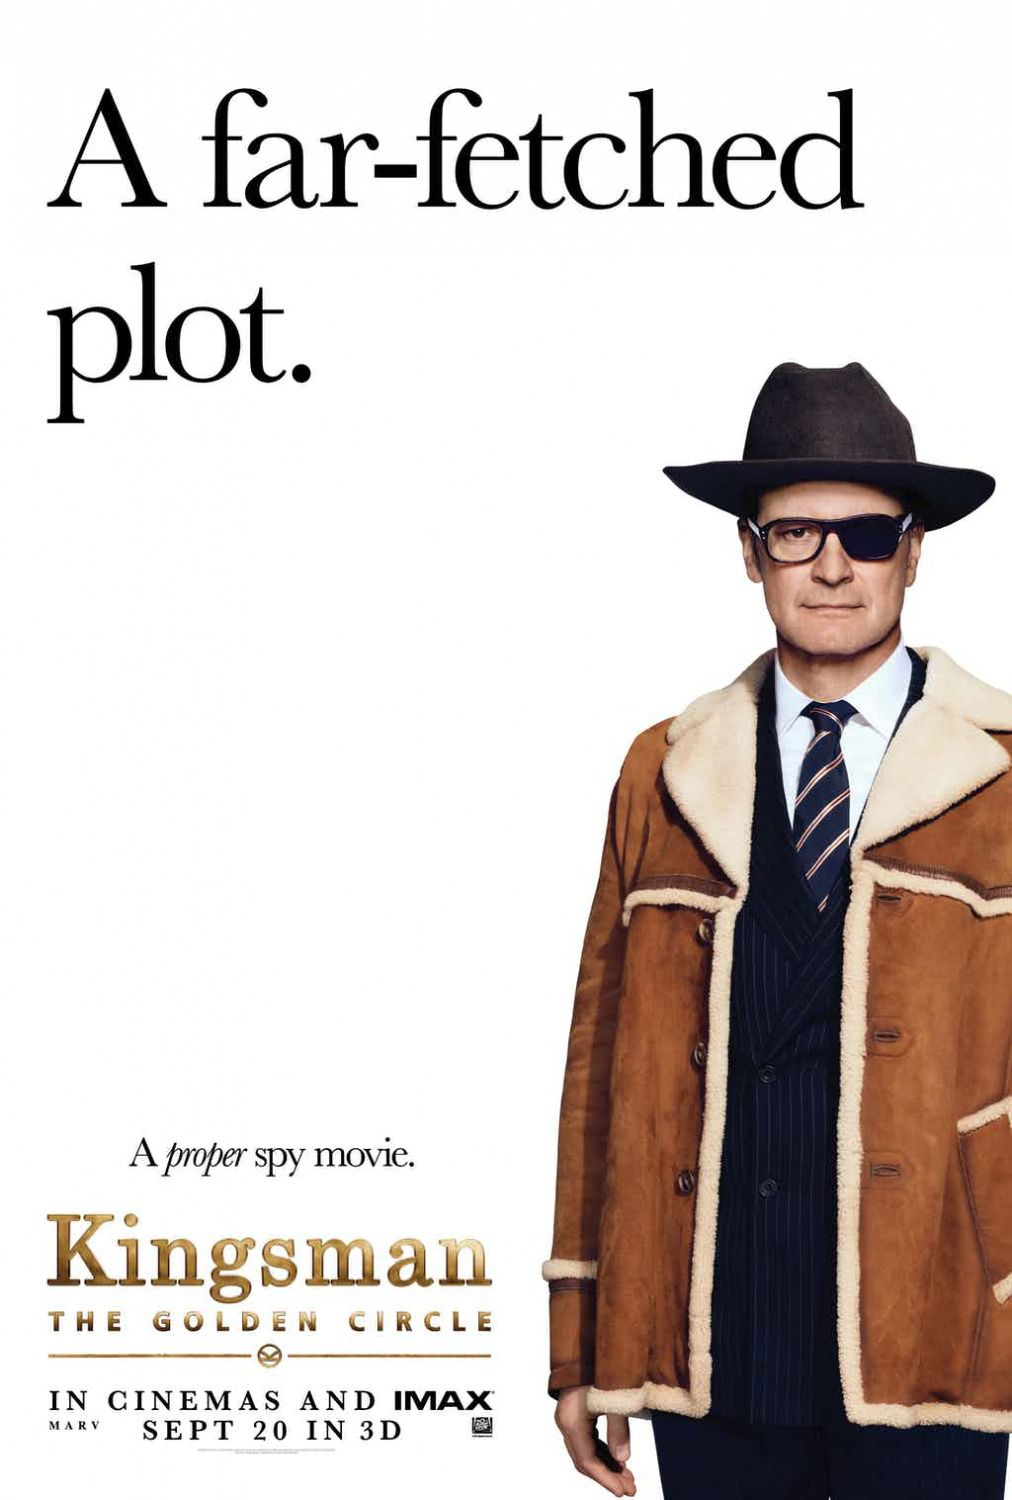 Kingsman 2 - the Golden Circle -  a far-fetched plot